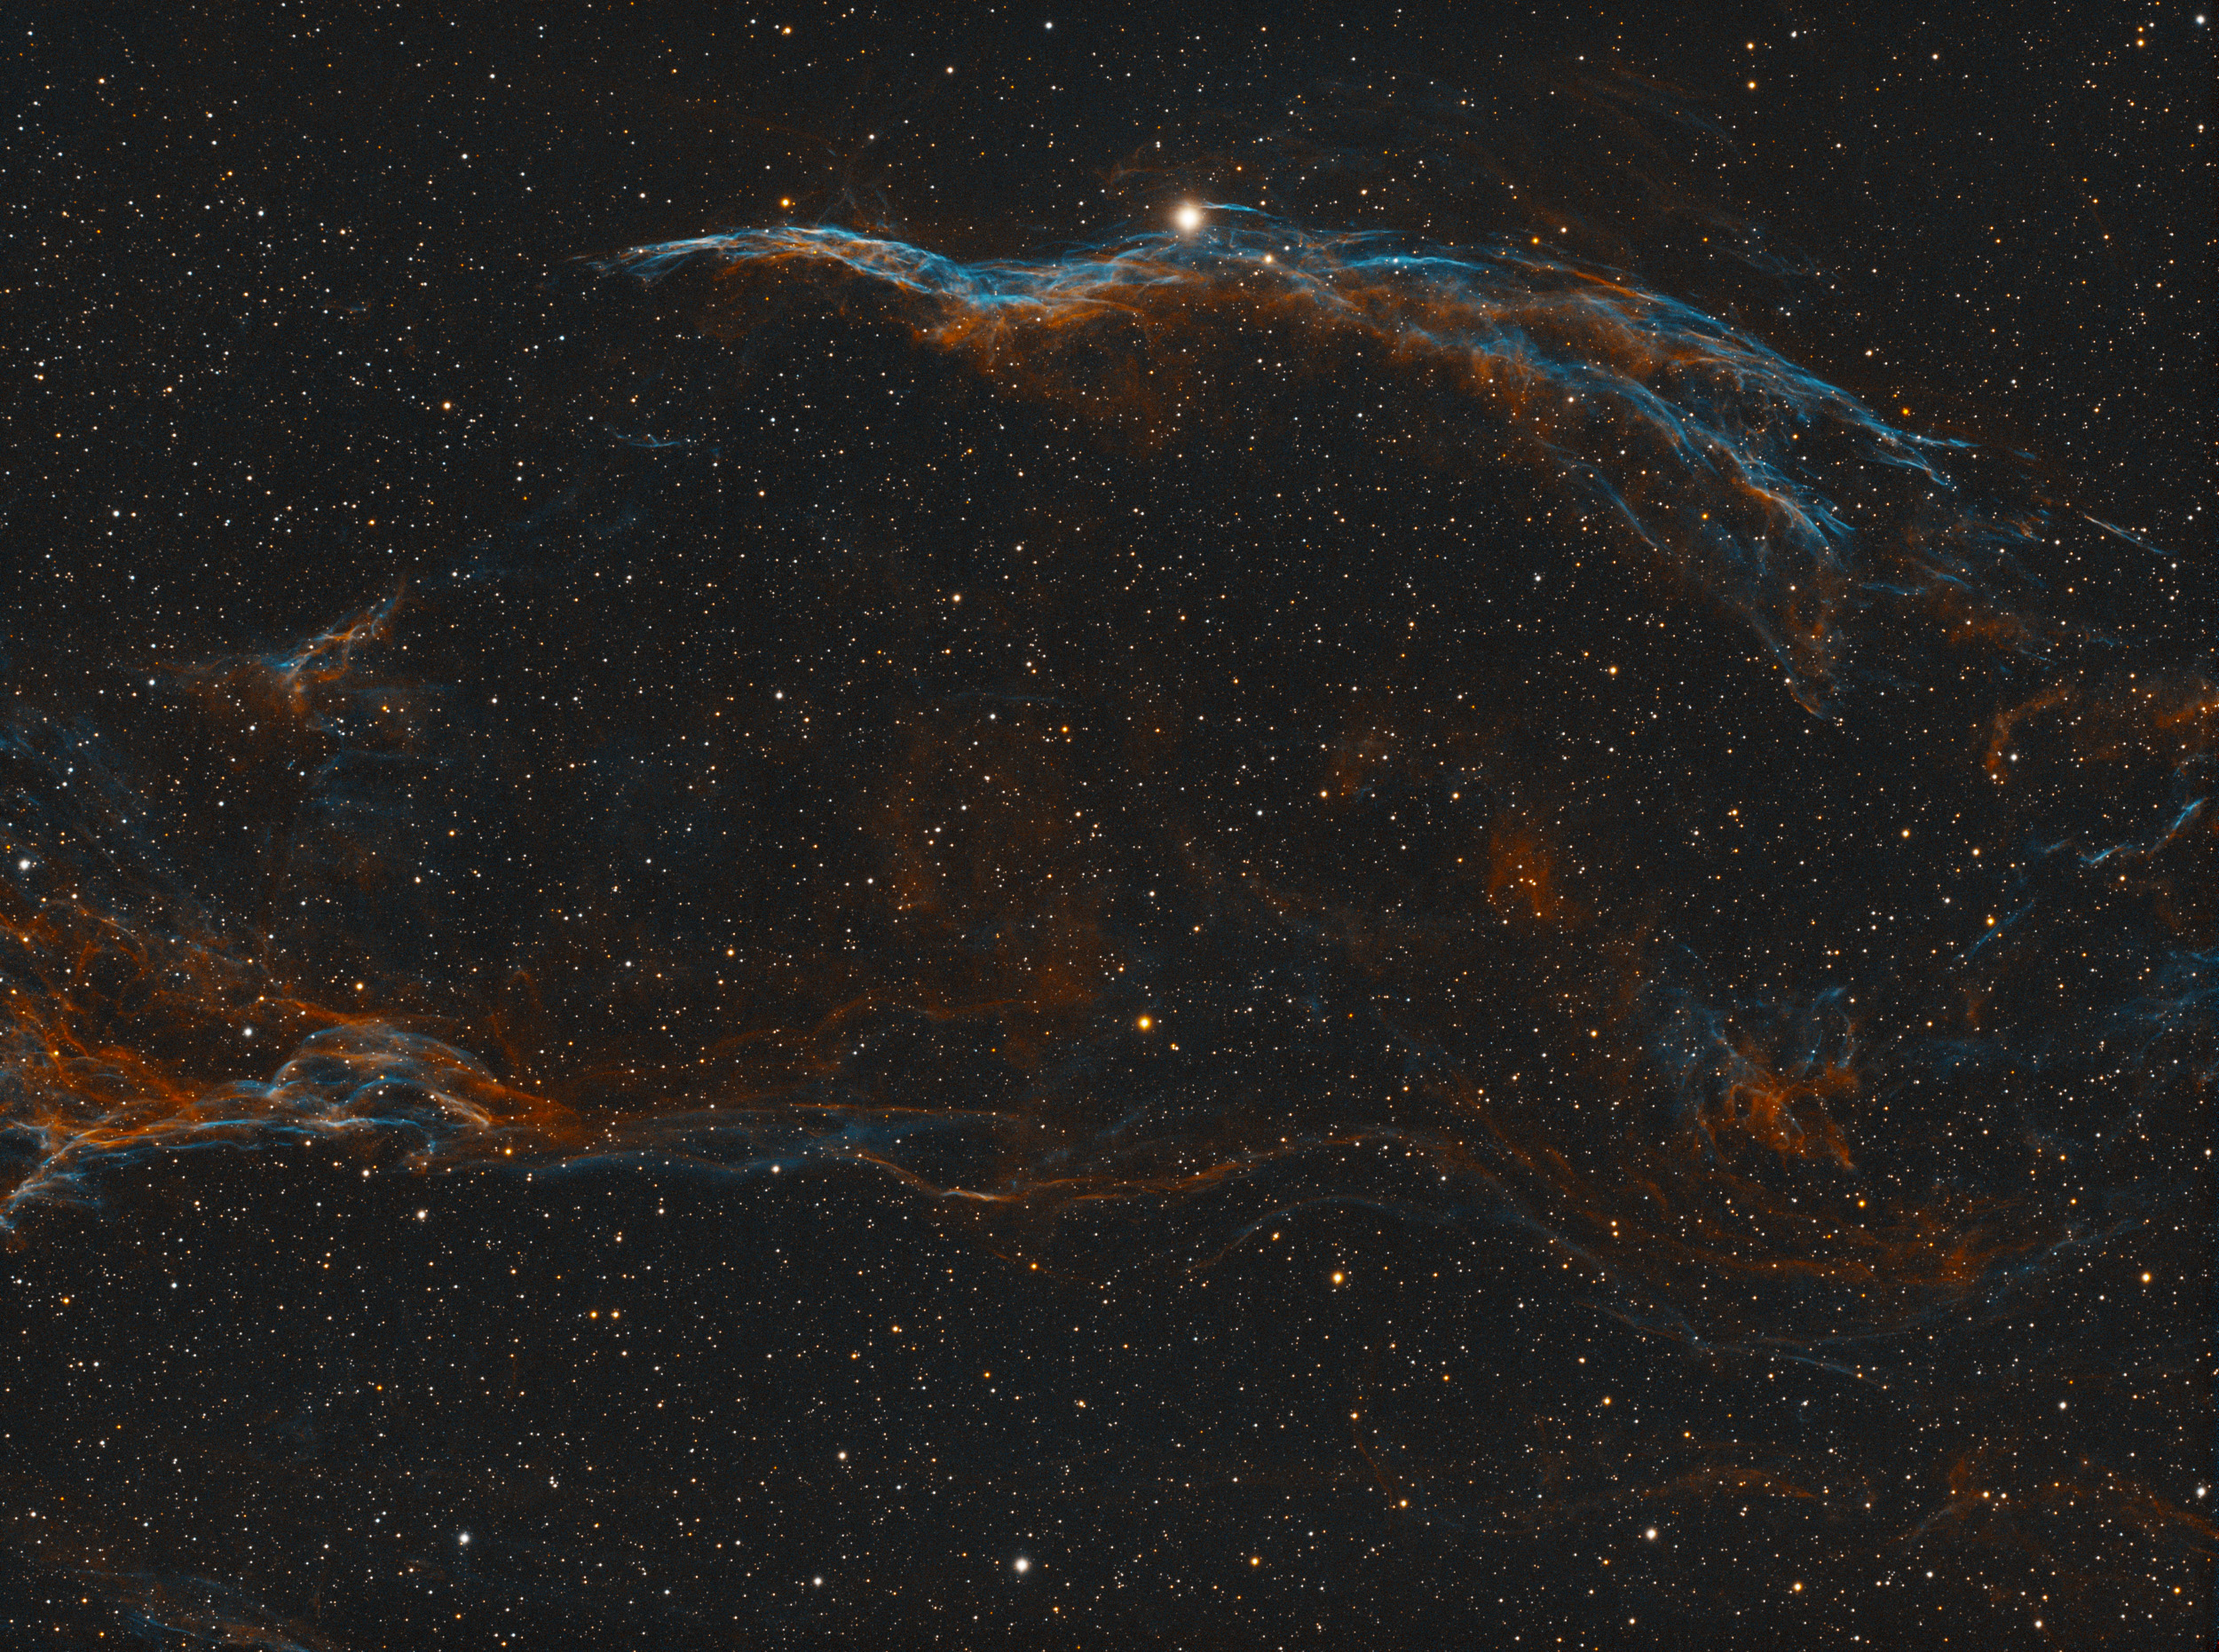 The final result of processing the Veil Nebula in Astro Pixel Processor on the Mac.